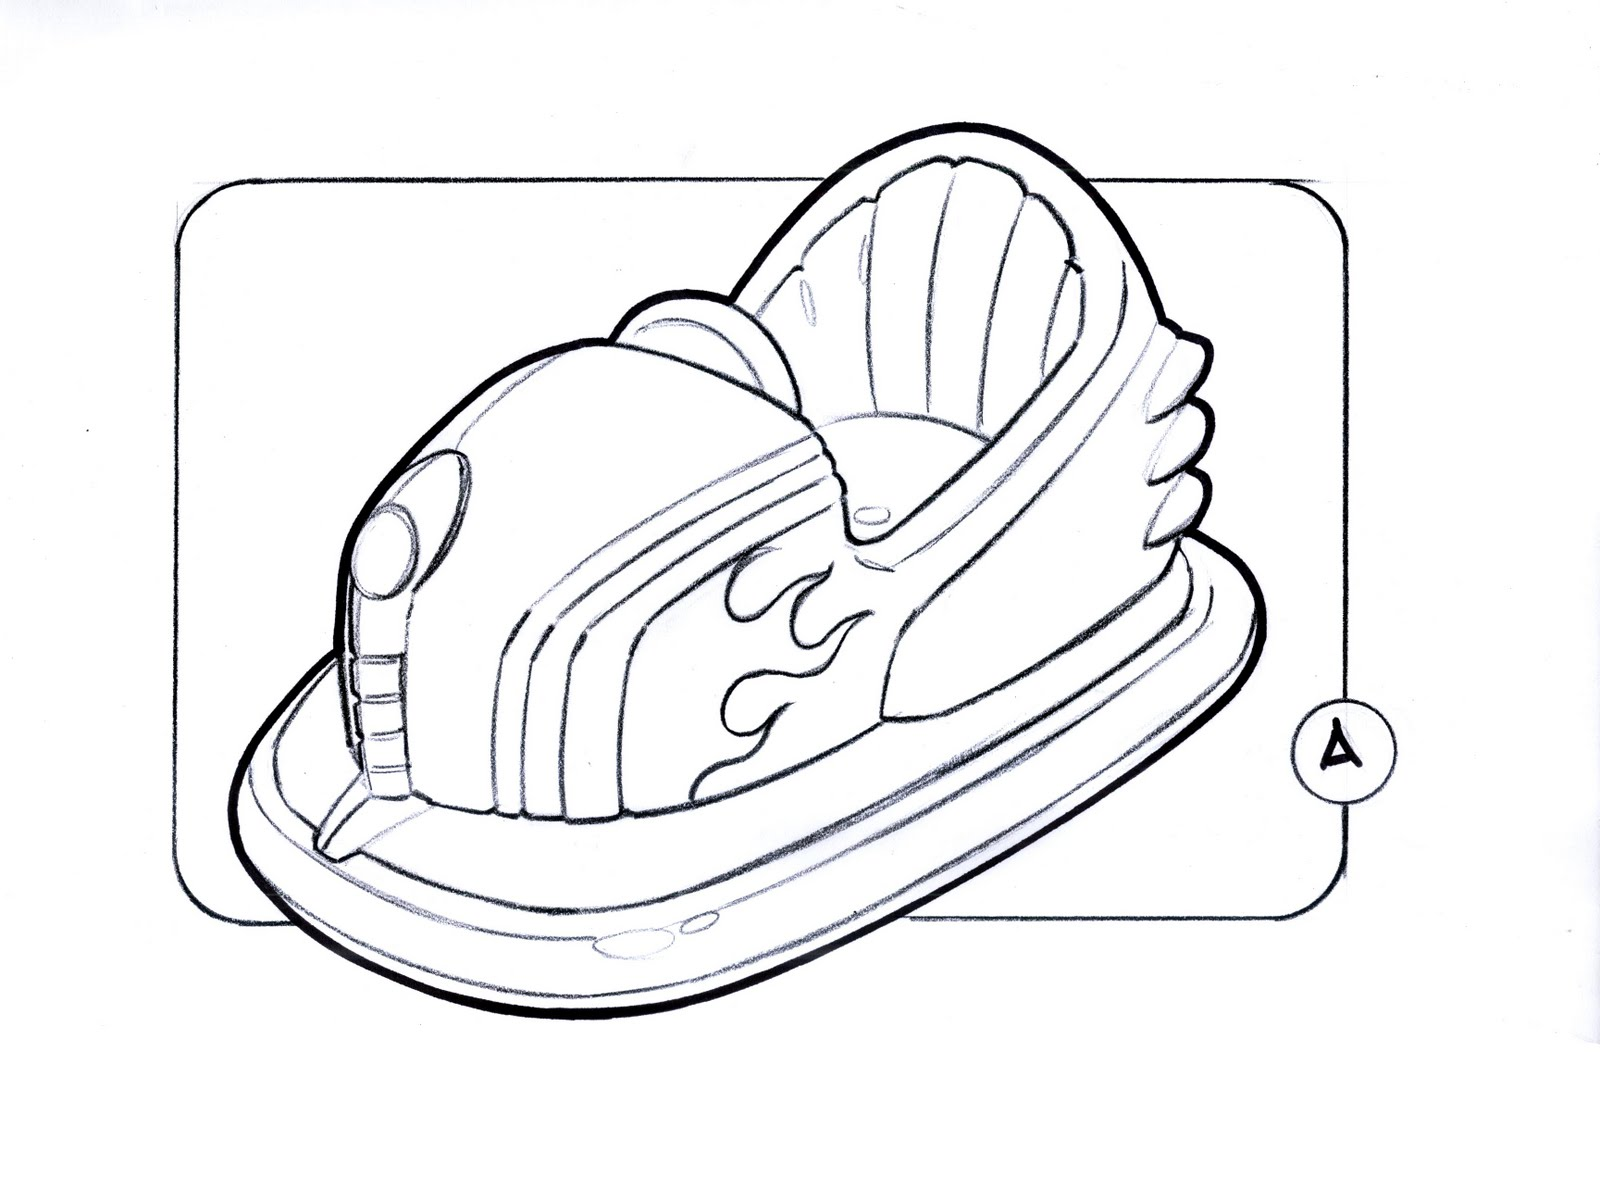 Bumper Car Coloring Pages : Image roller coaster car drawing sketch coloring page